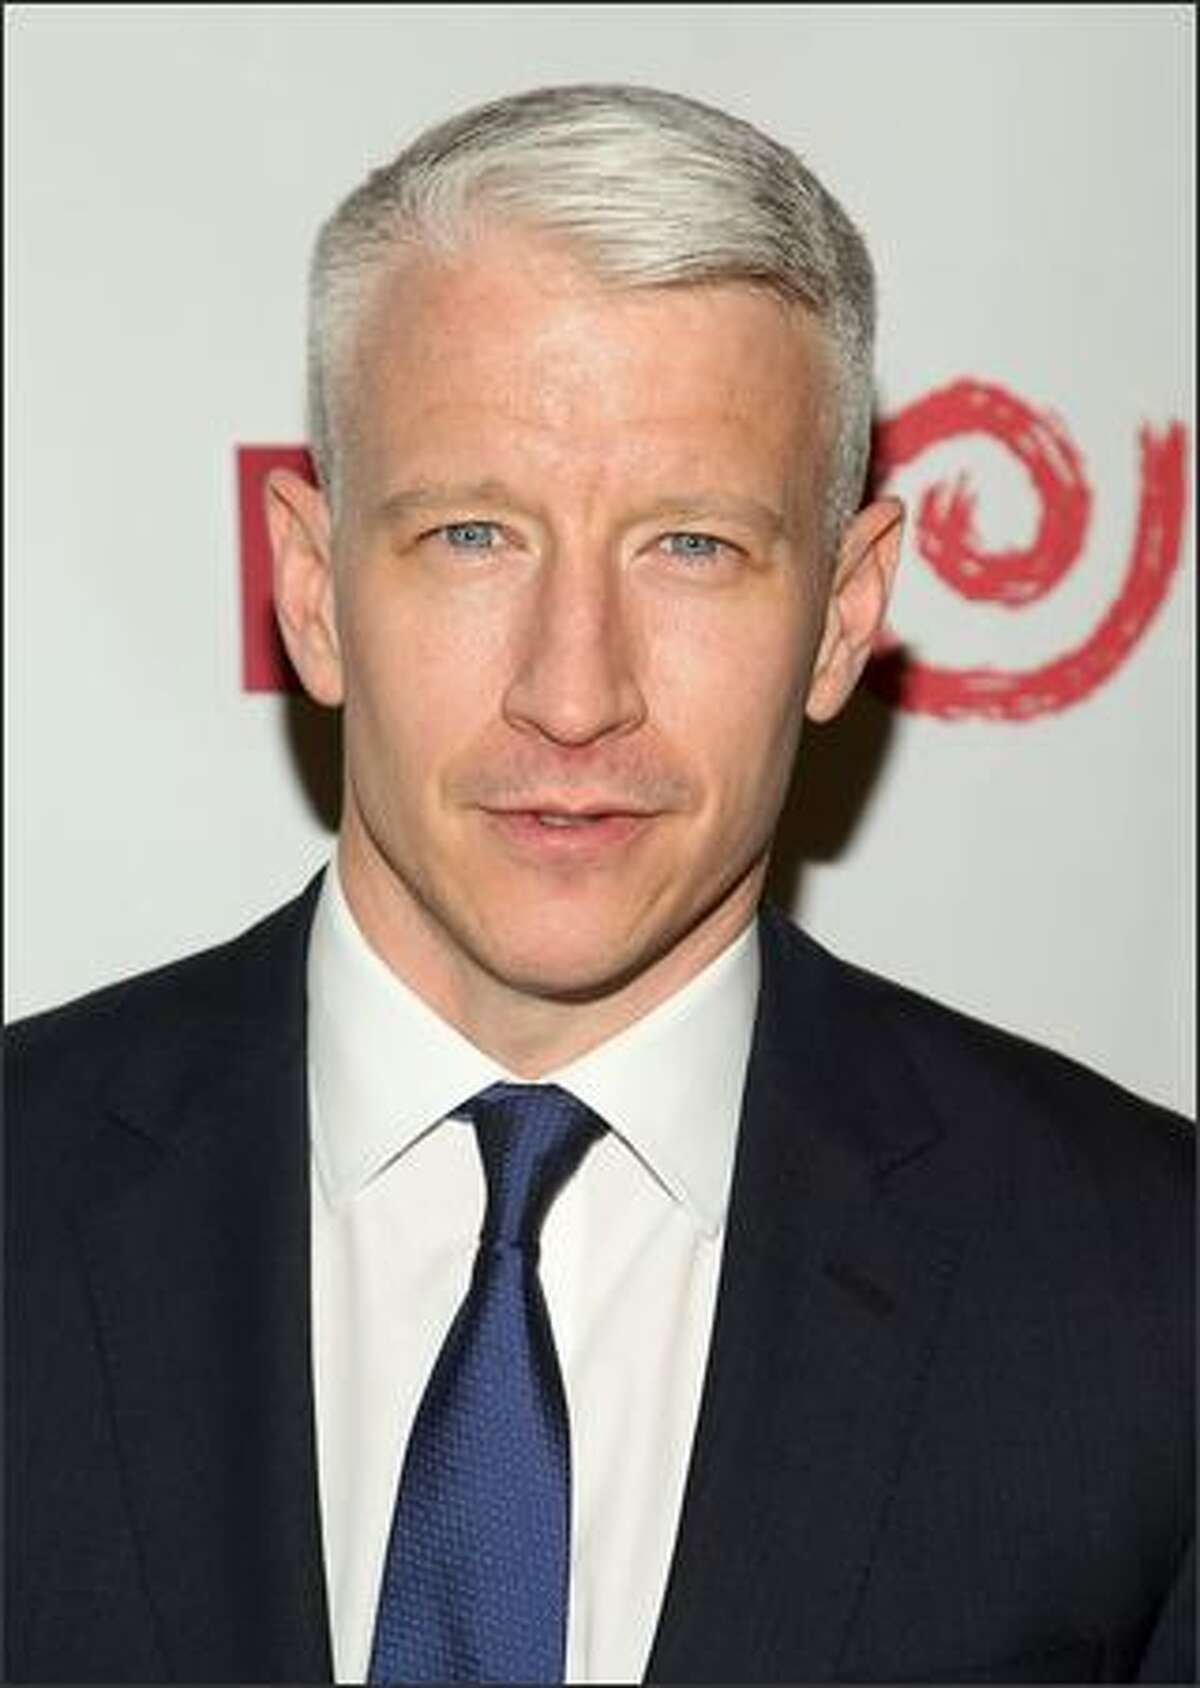 CNN anchor Anderson Cooper attends the 5th Annual Wayuu Taya Fundraising Gala at The Bowery Hotel in New York.